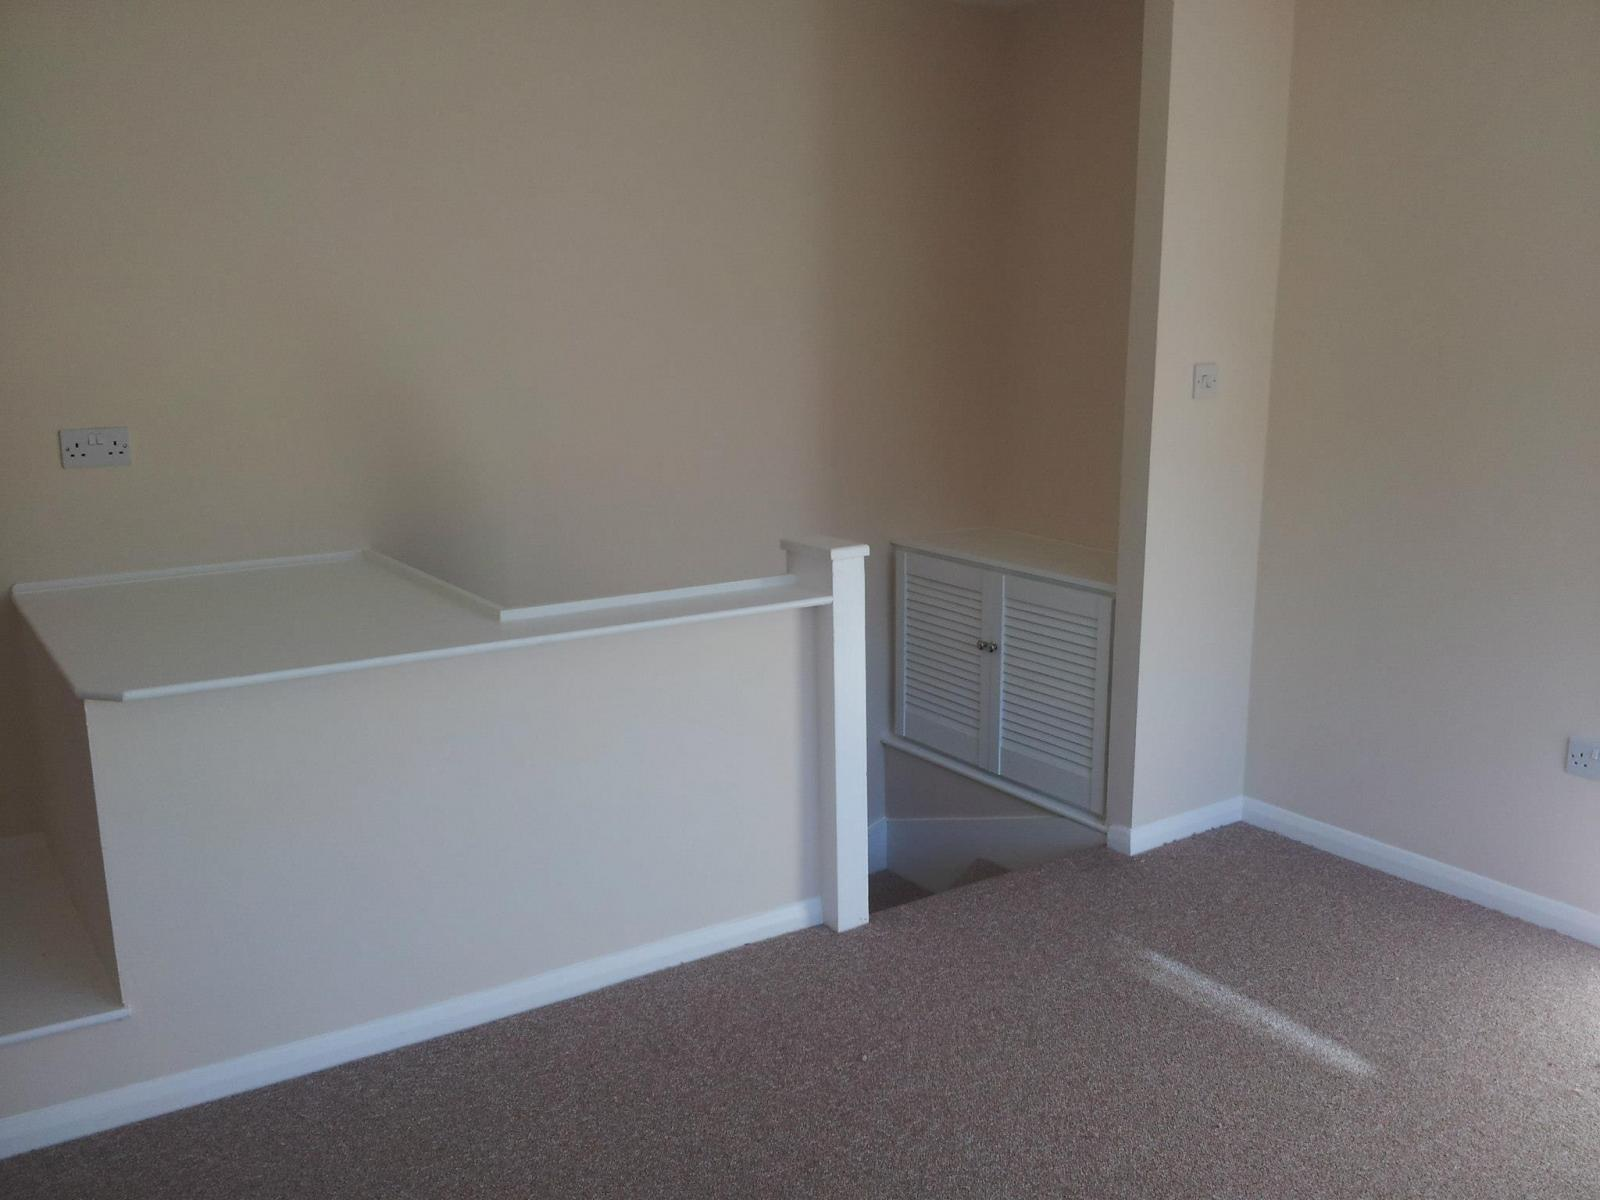 One-bedroom-house-in-Aldershot-4